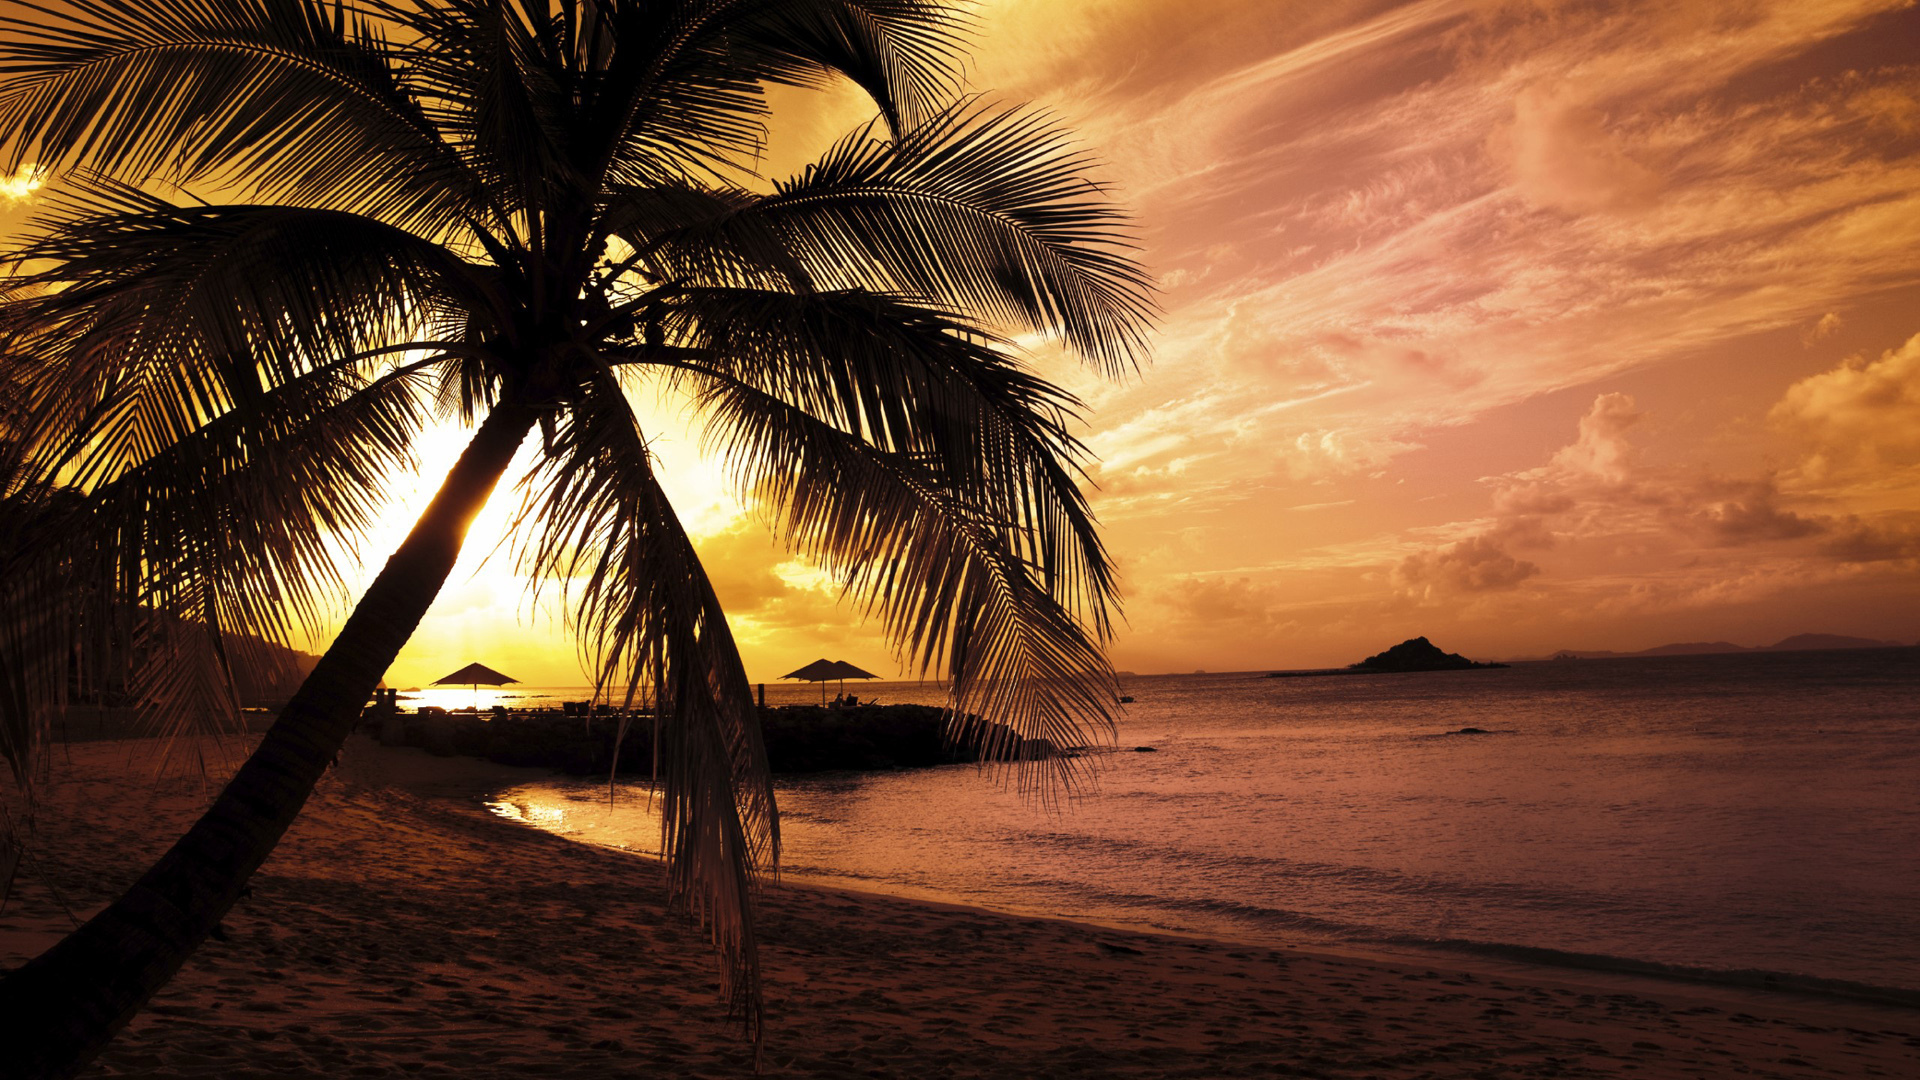 Full hd nature wallpapers 1080p desktop with sunset in - Beach hd wallpapers 1080p ...